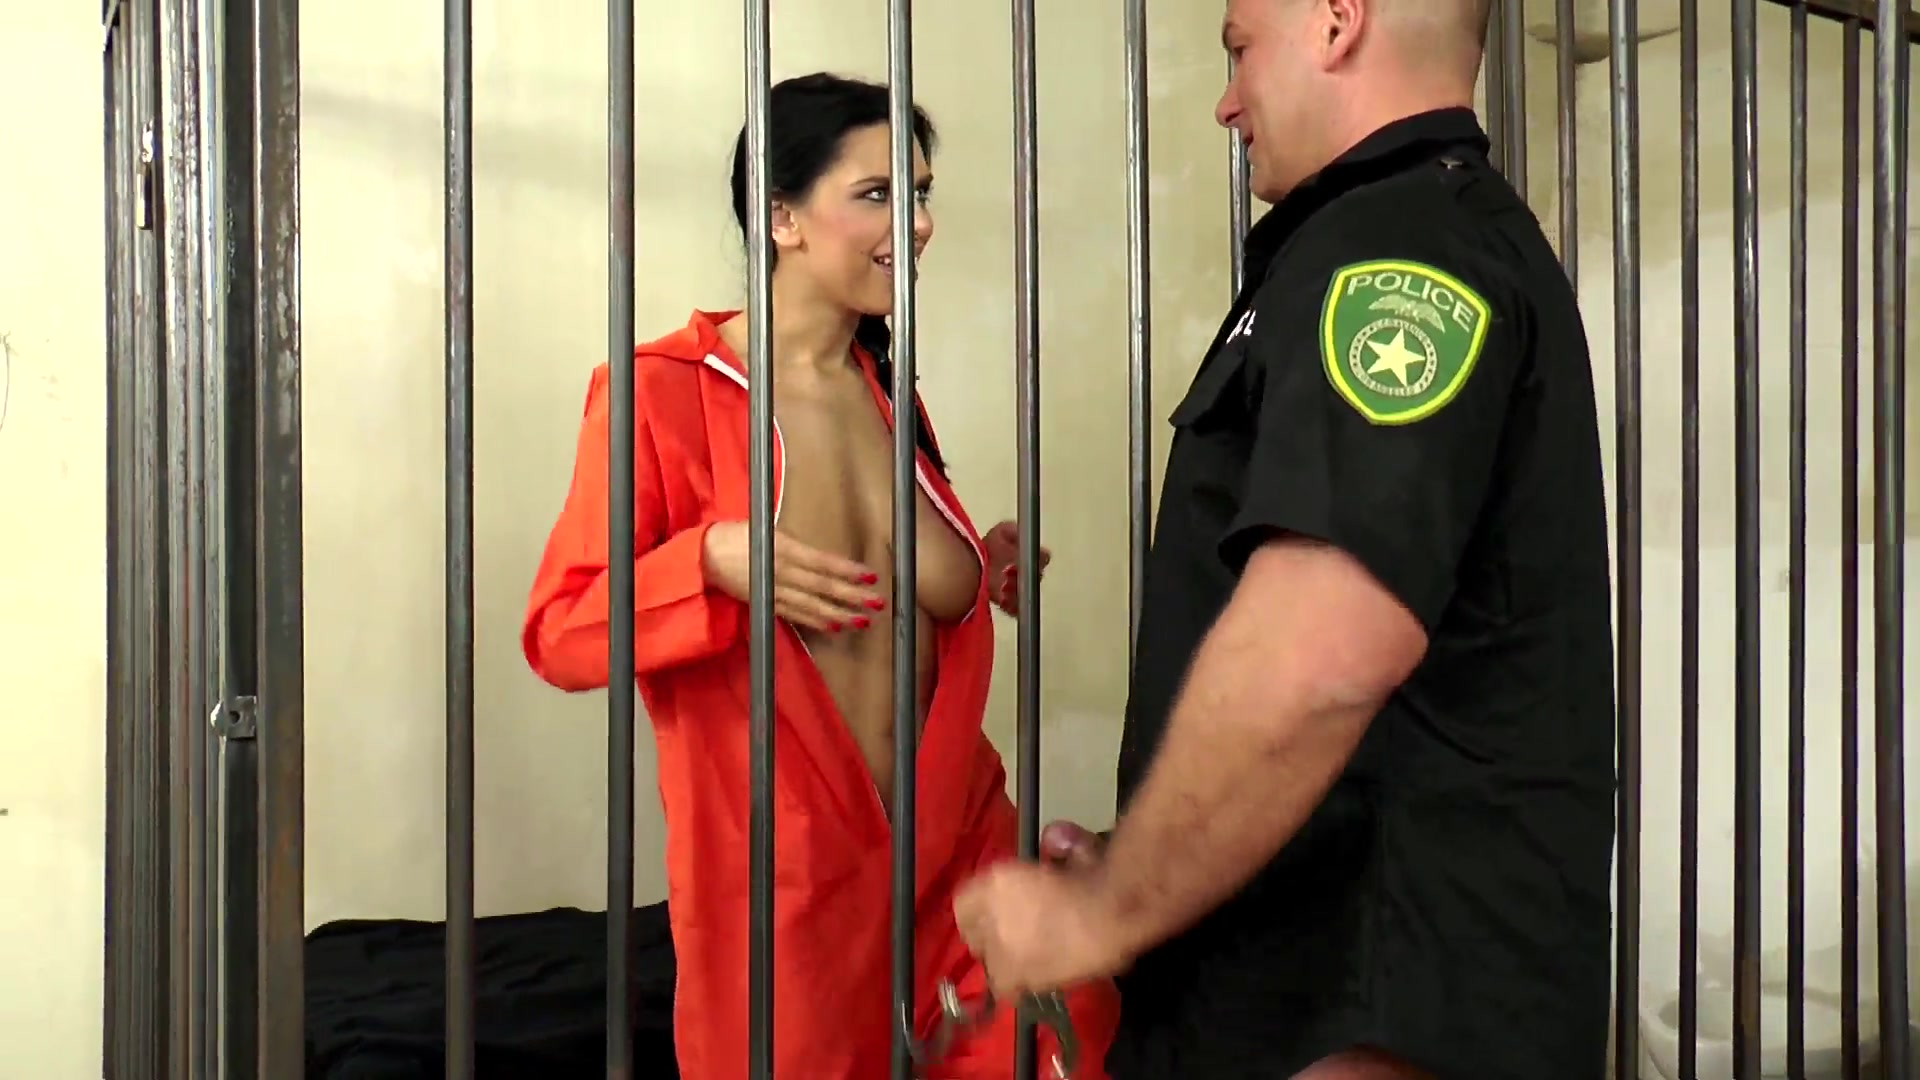 Sexy be wicked police woman officer sergeant prison guard sheriff cop costume